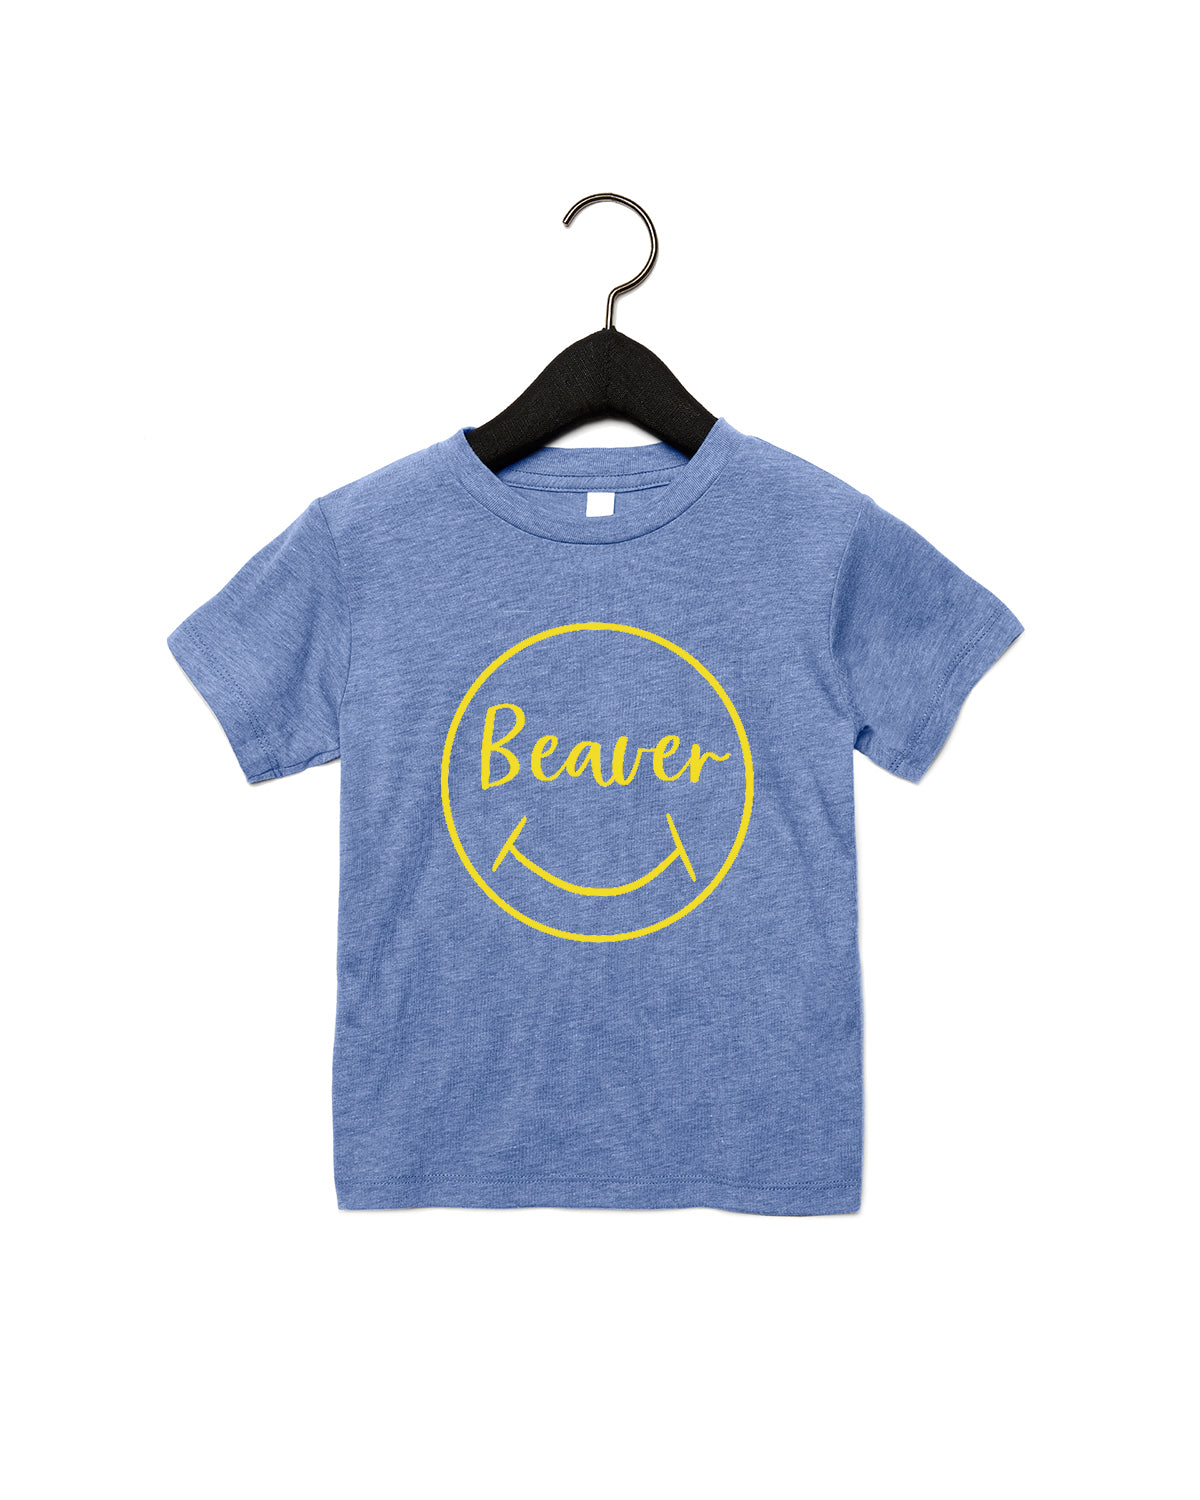 Toddler Beaver Smile Tee.